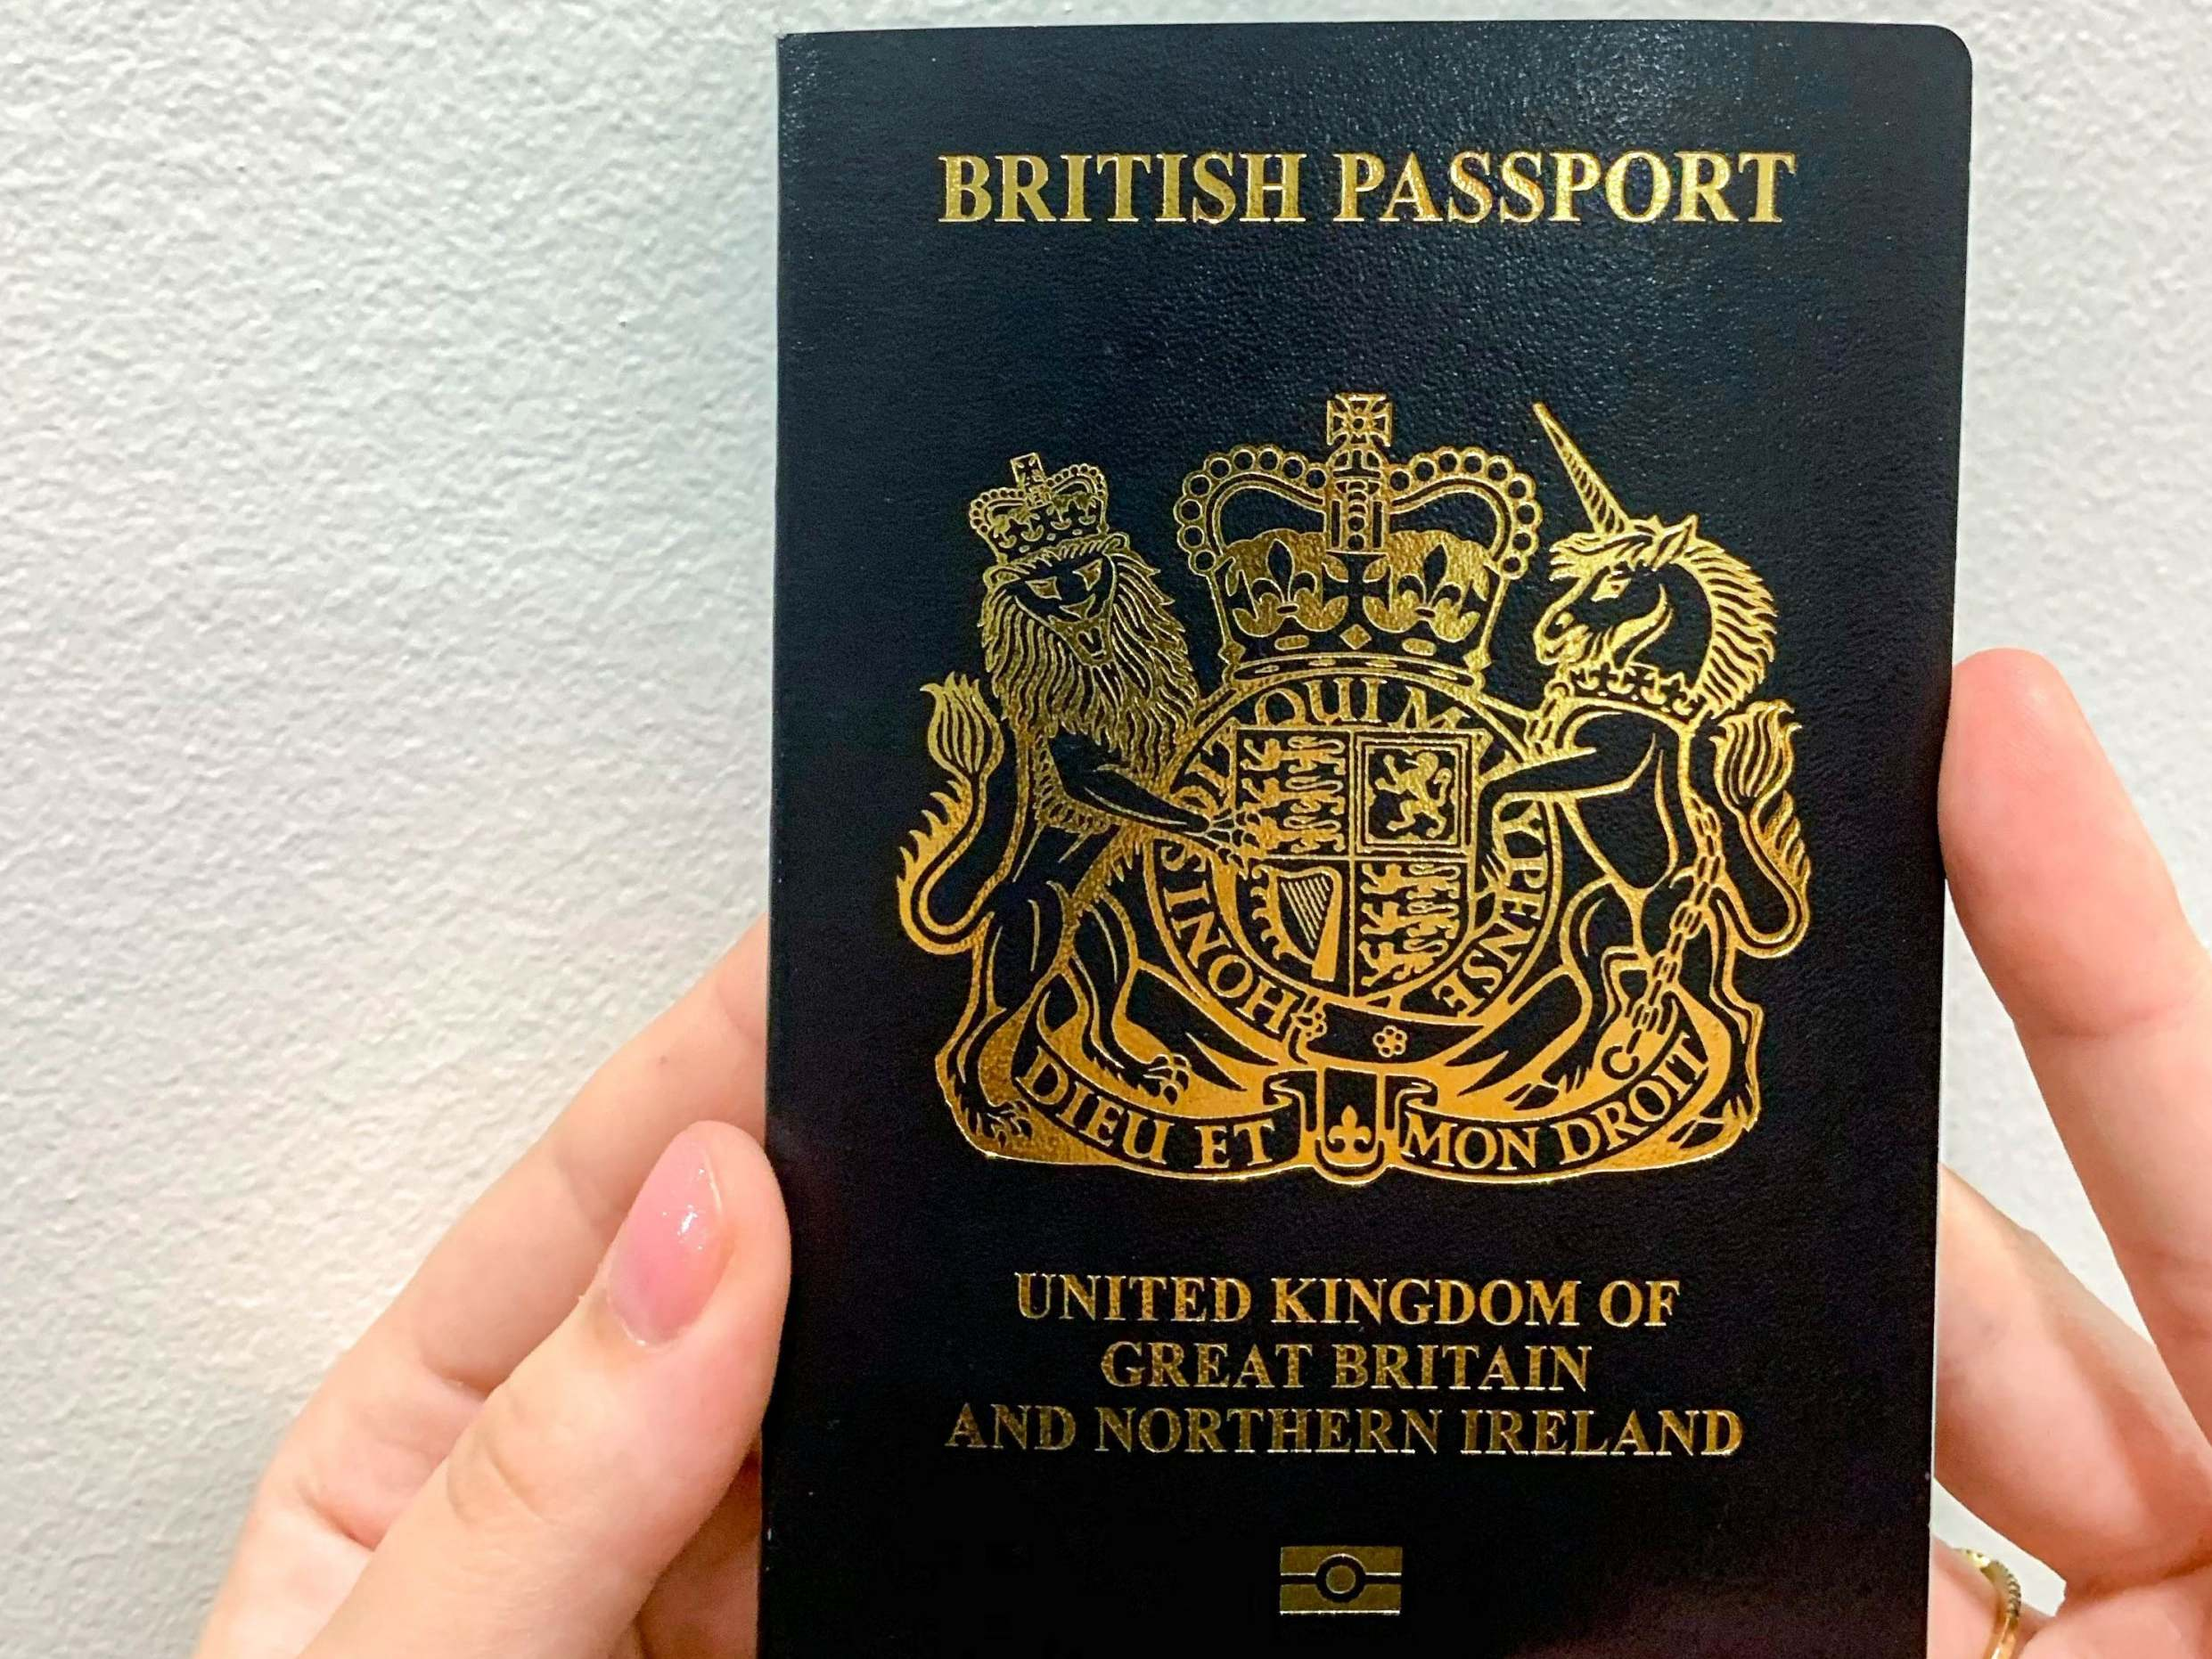 It's not even blue': Bemusement over new British passports being 'black' |  The Independent | The Independent